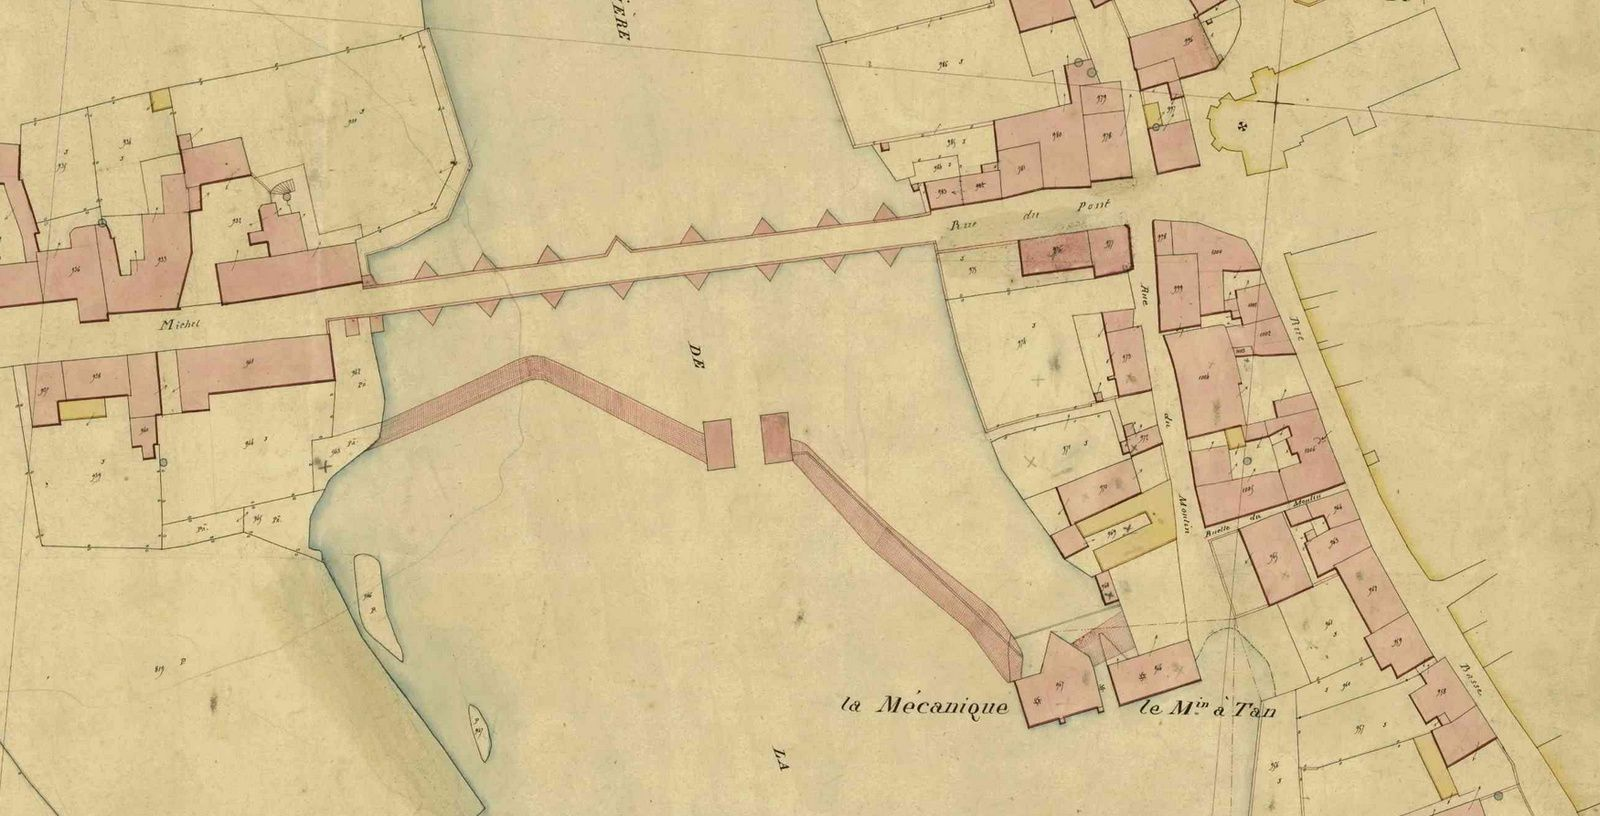 Cadastre 1843, section A4